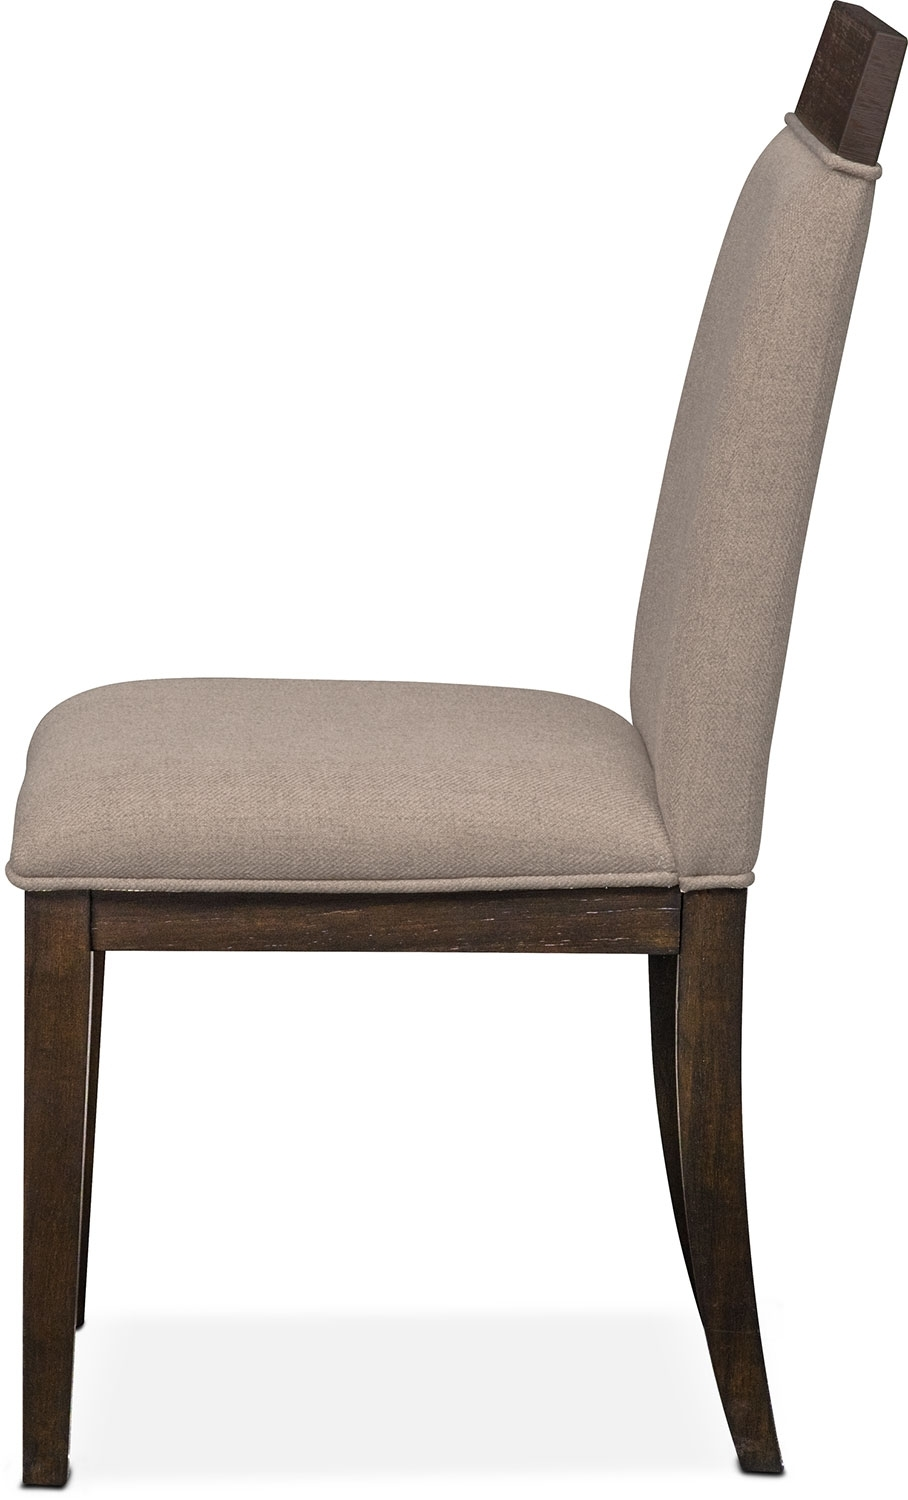 Gavin Side Chair – Brownstone | Value City Furniture And Mattresses In Newest Gavin 7 Piece Dining Sets With Clint Side Chairs (Image 6 of 20)